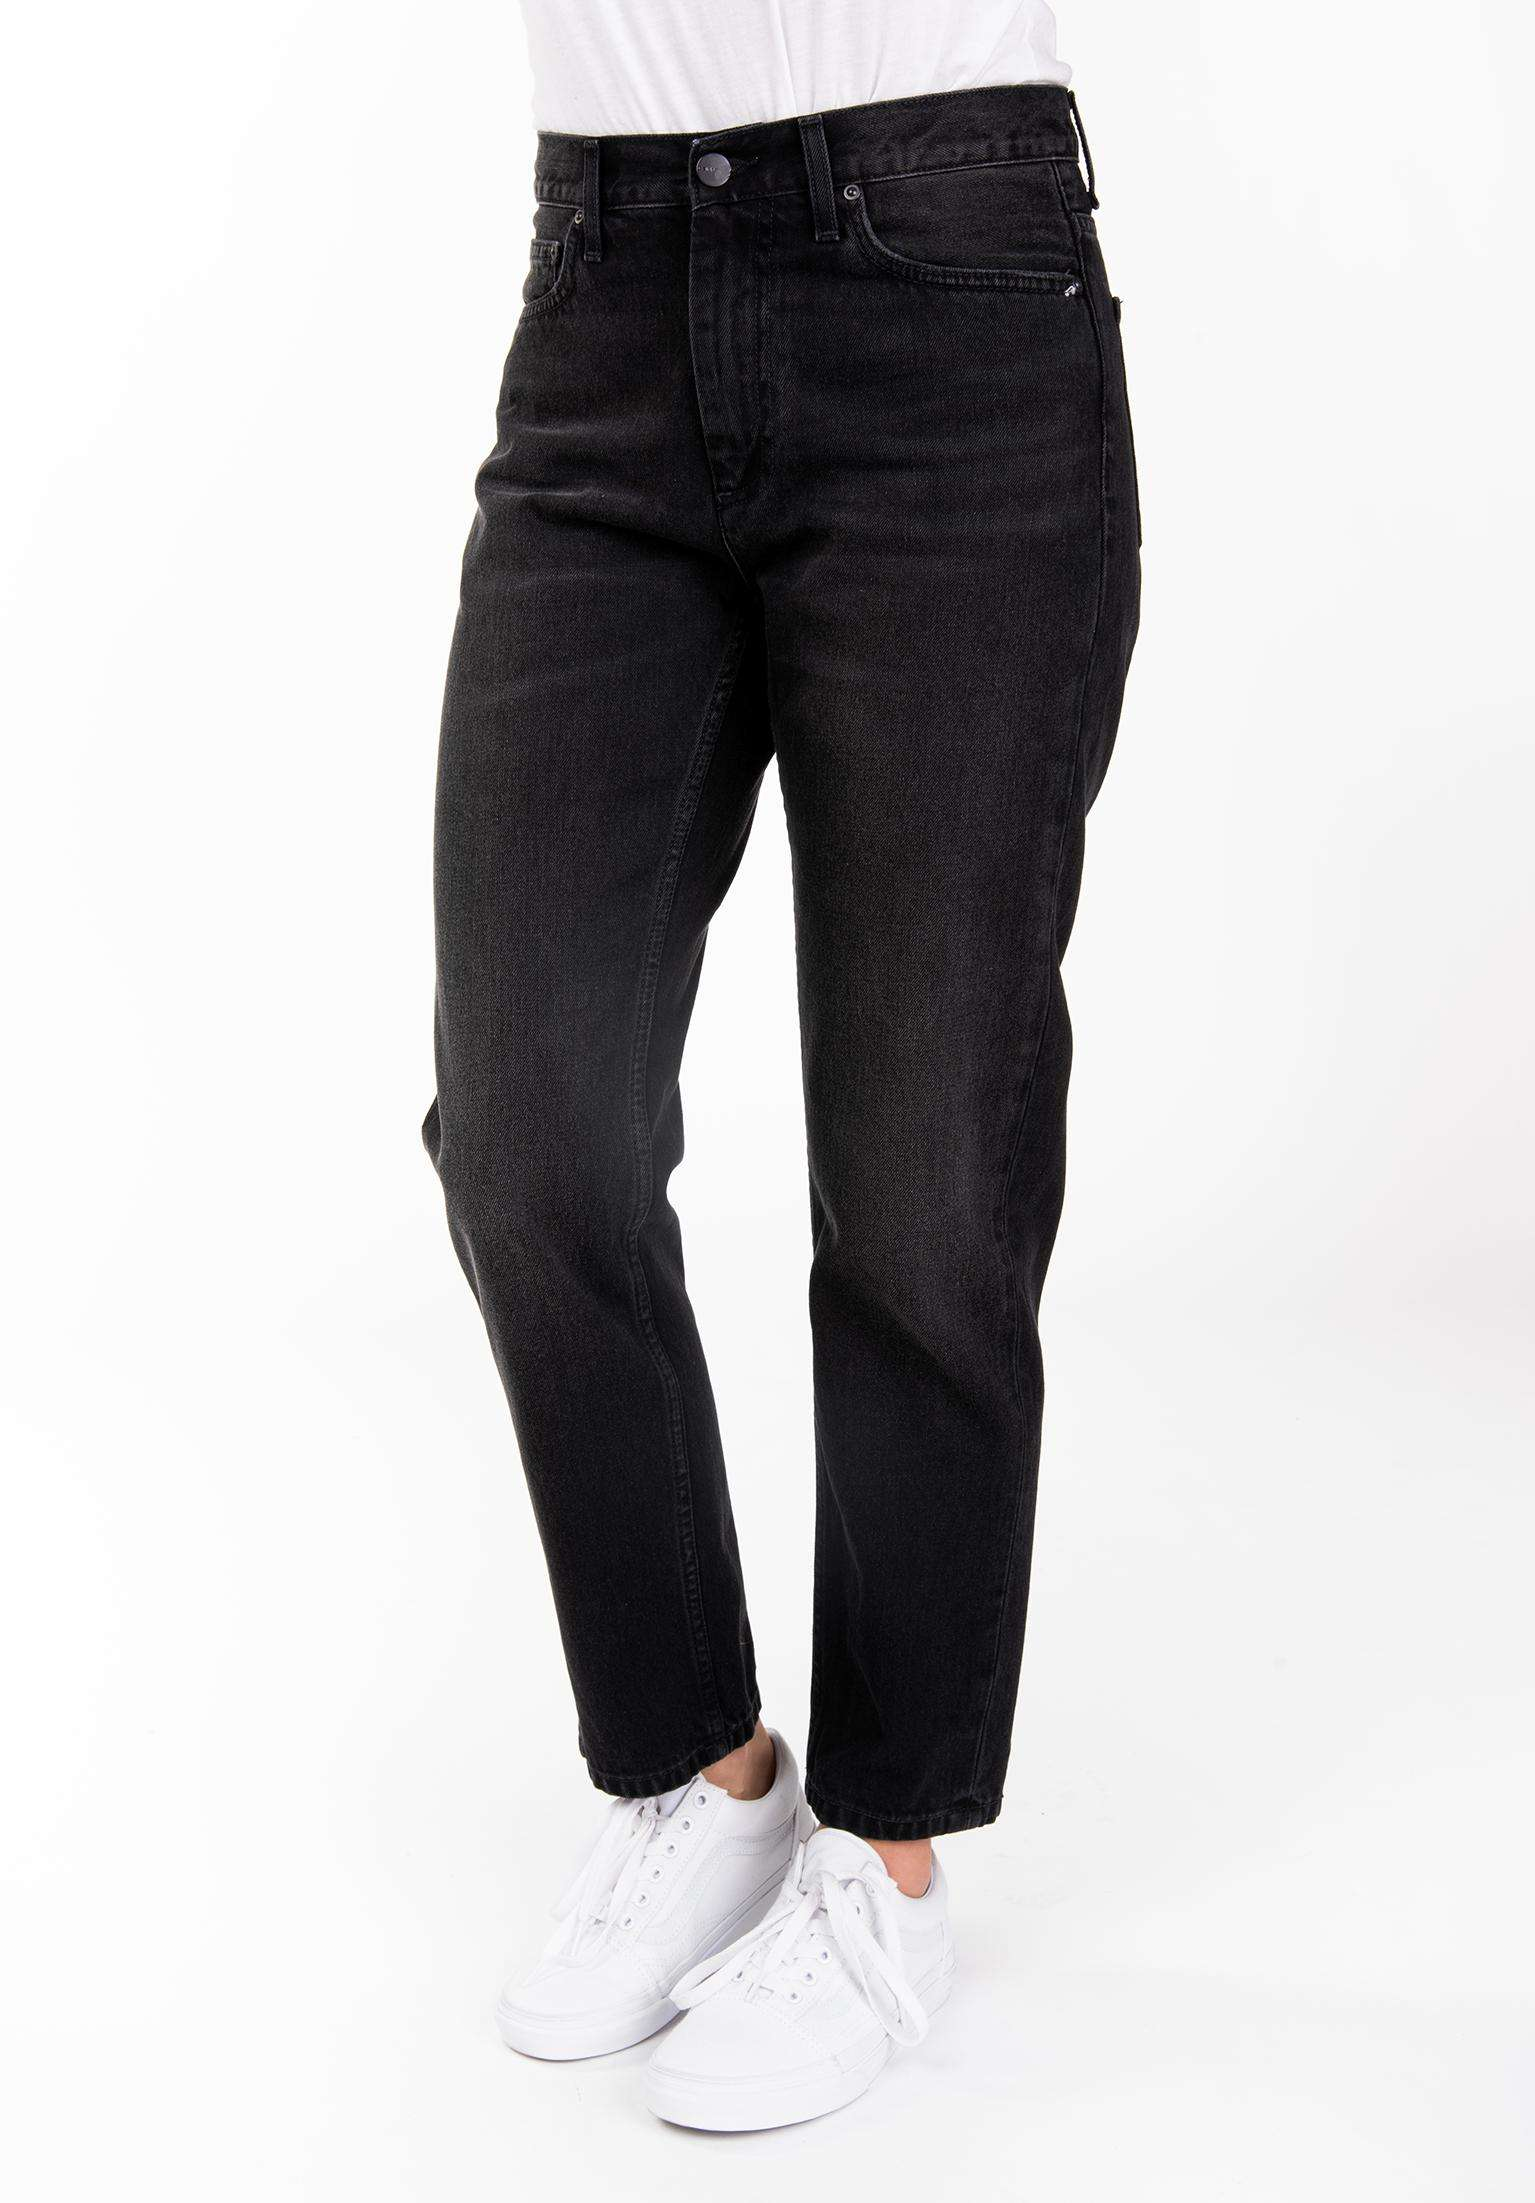 premium selection 4f95e 7a4c0 W  Page Carrot Ankle Carhartt WIP Jeans in black-90s-wash for Women   Titus